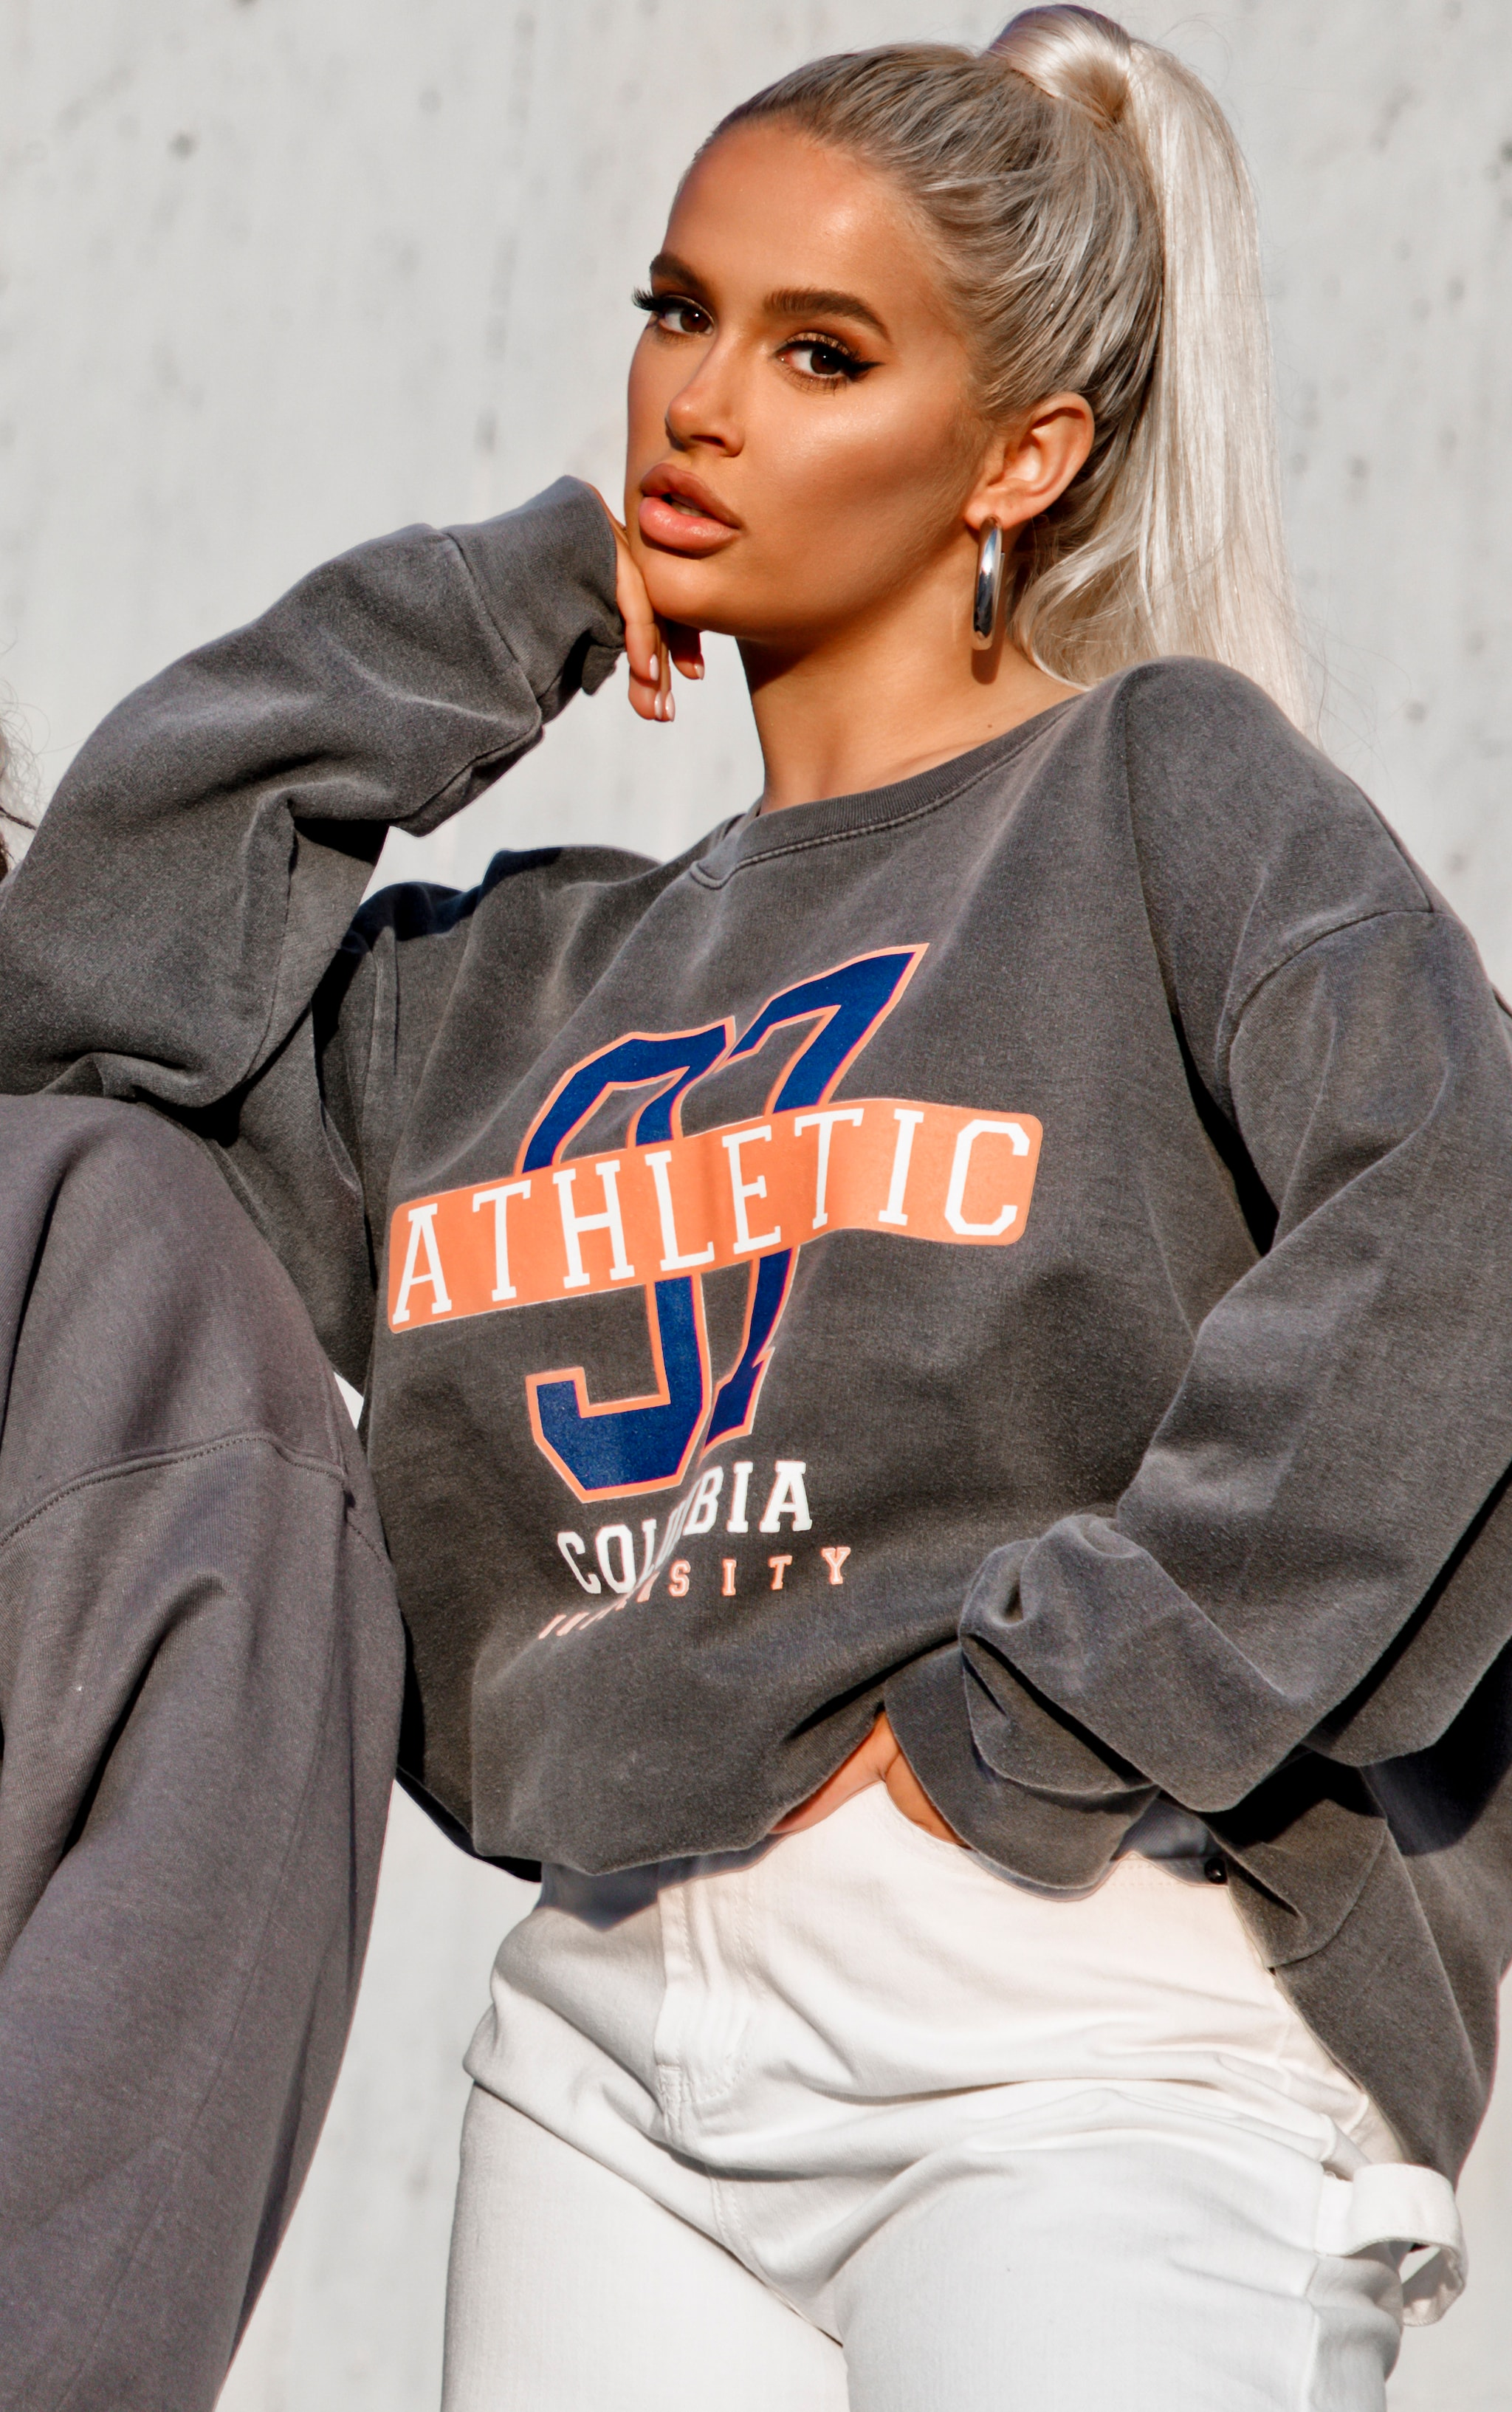 Charcoal 97 Athletic Slogan Sweater 5